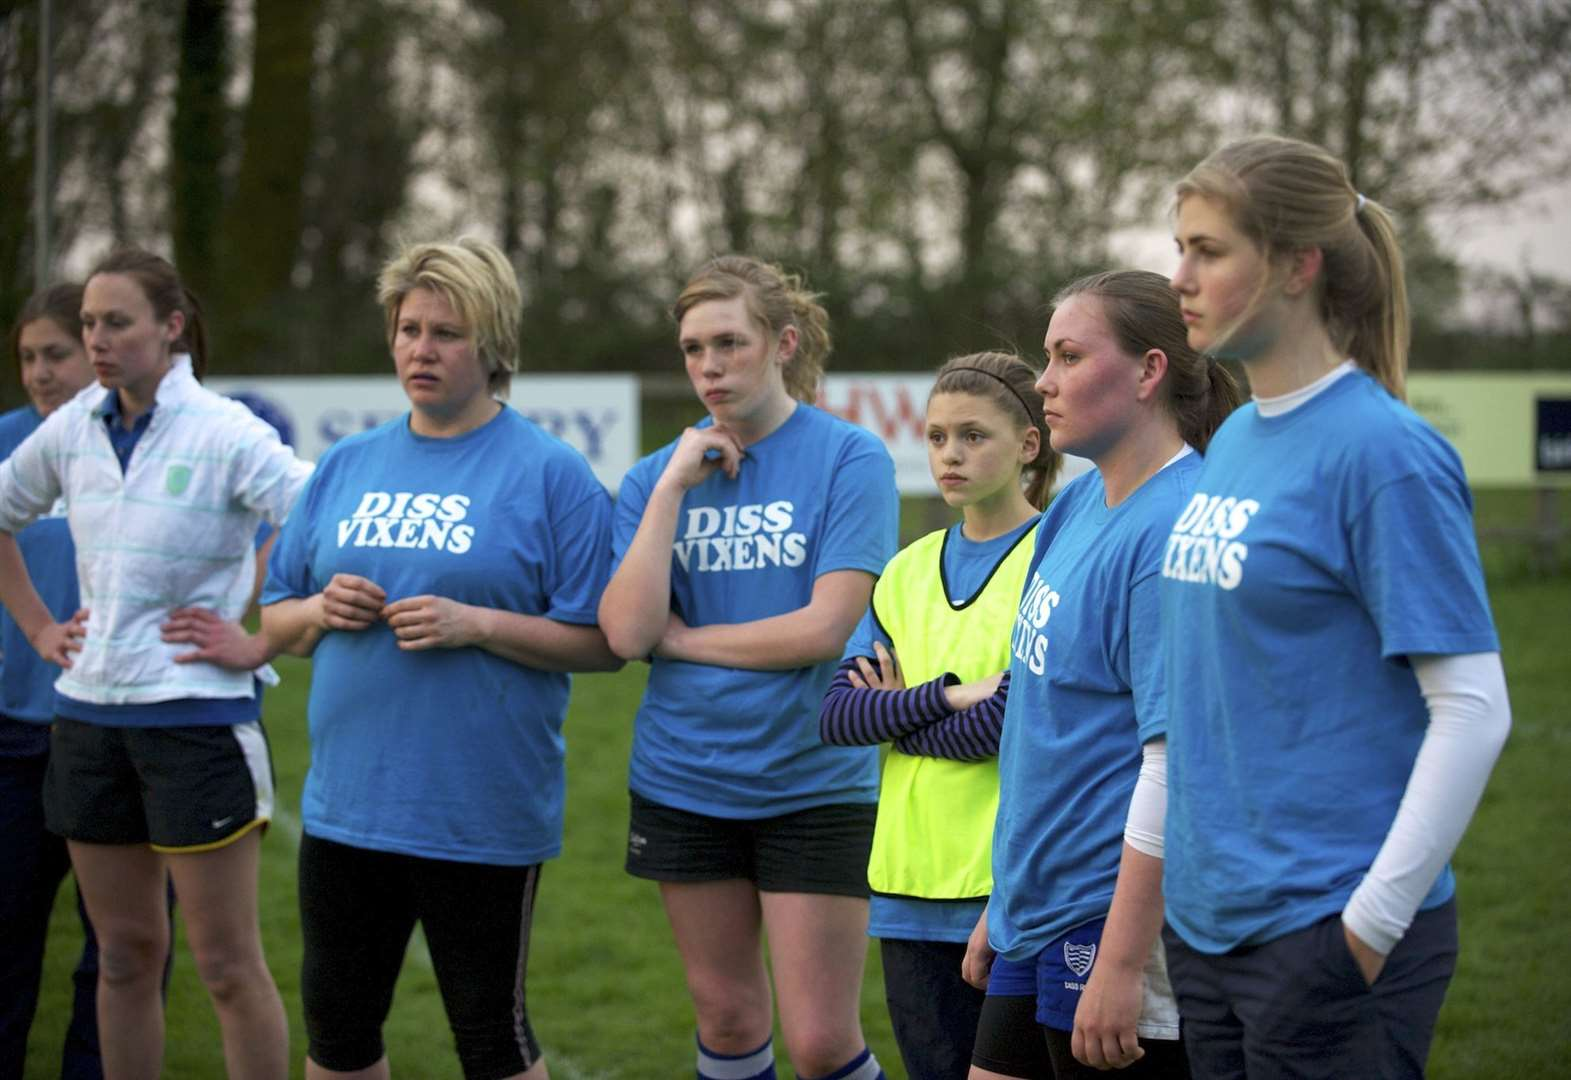 England Rugby initiative is coming to Diss' Mackenders